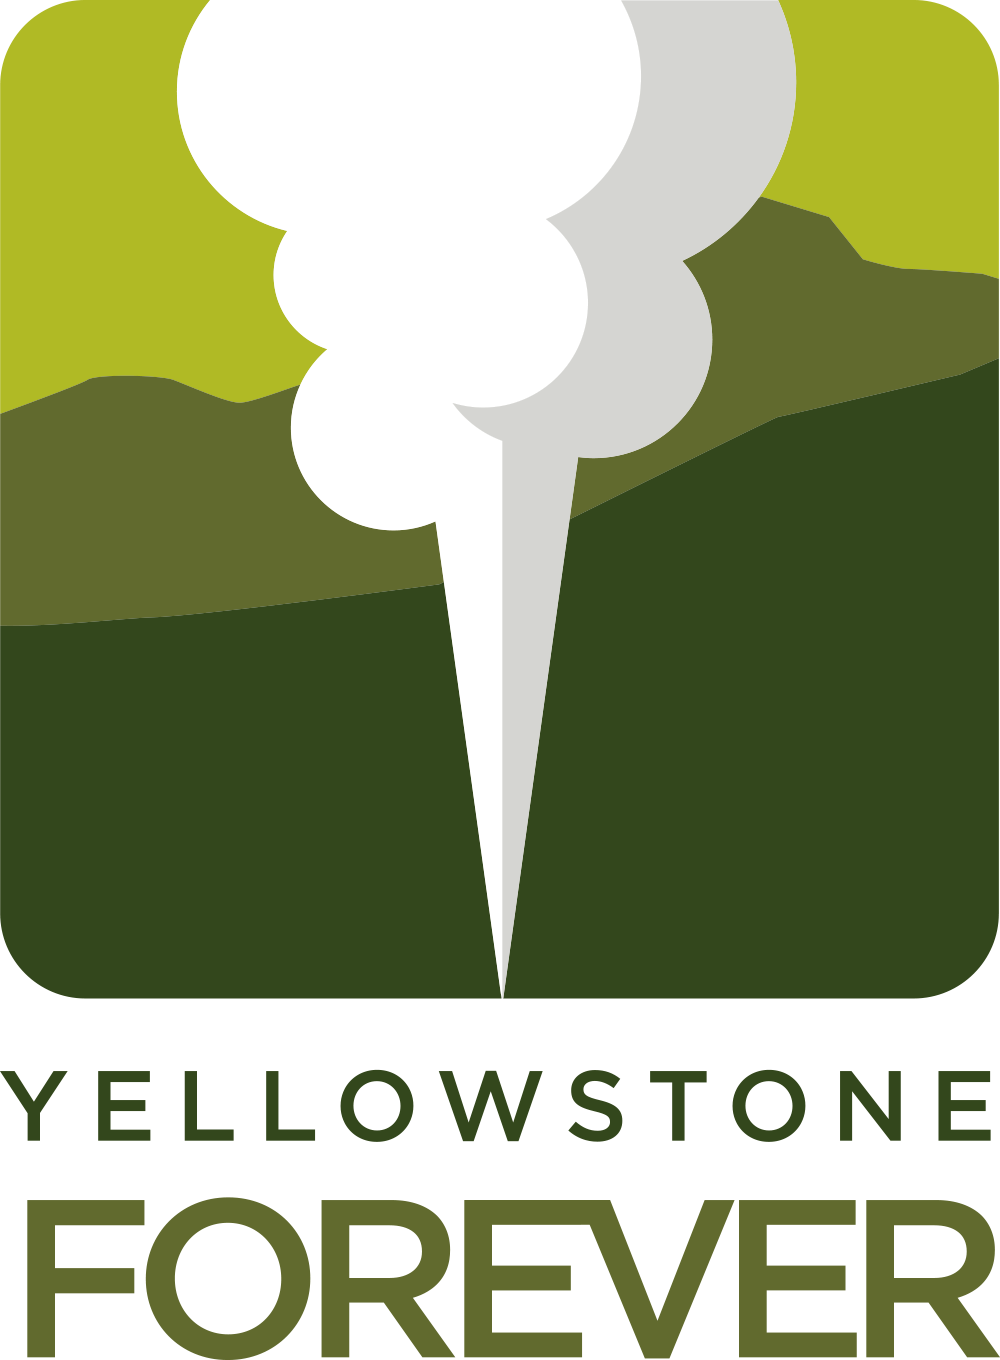 1000x1360 Yellowstone Forever Yellowstone Forever National